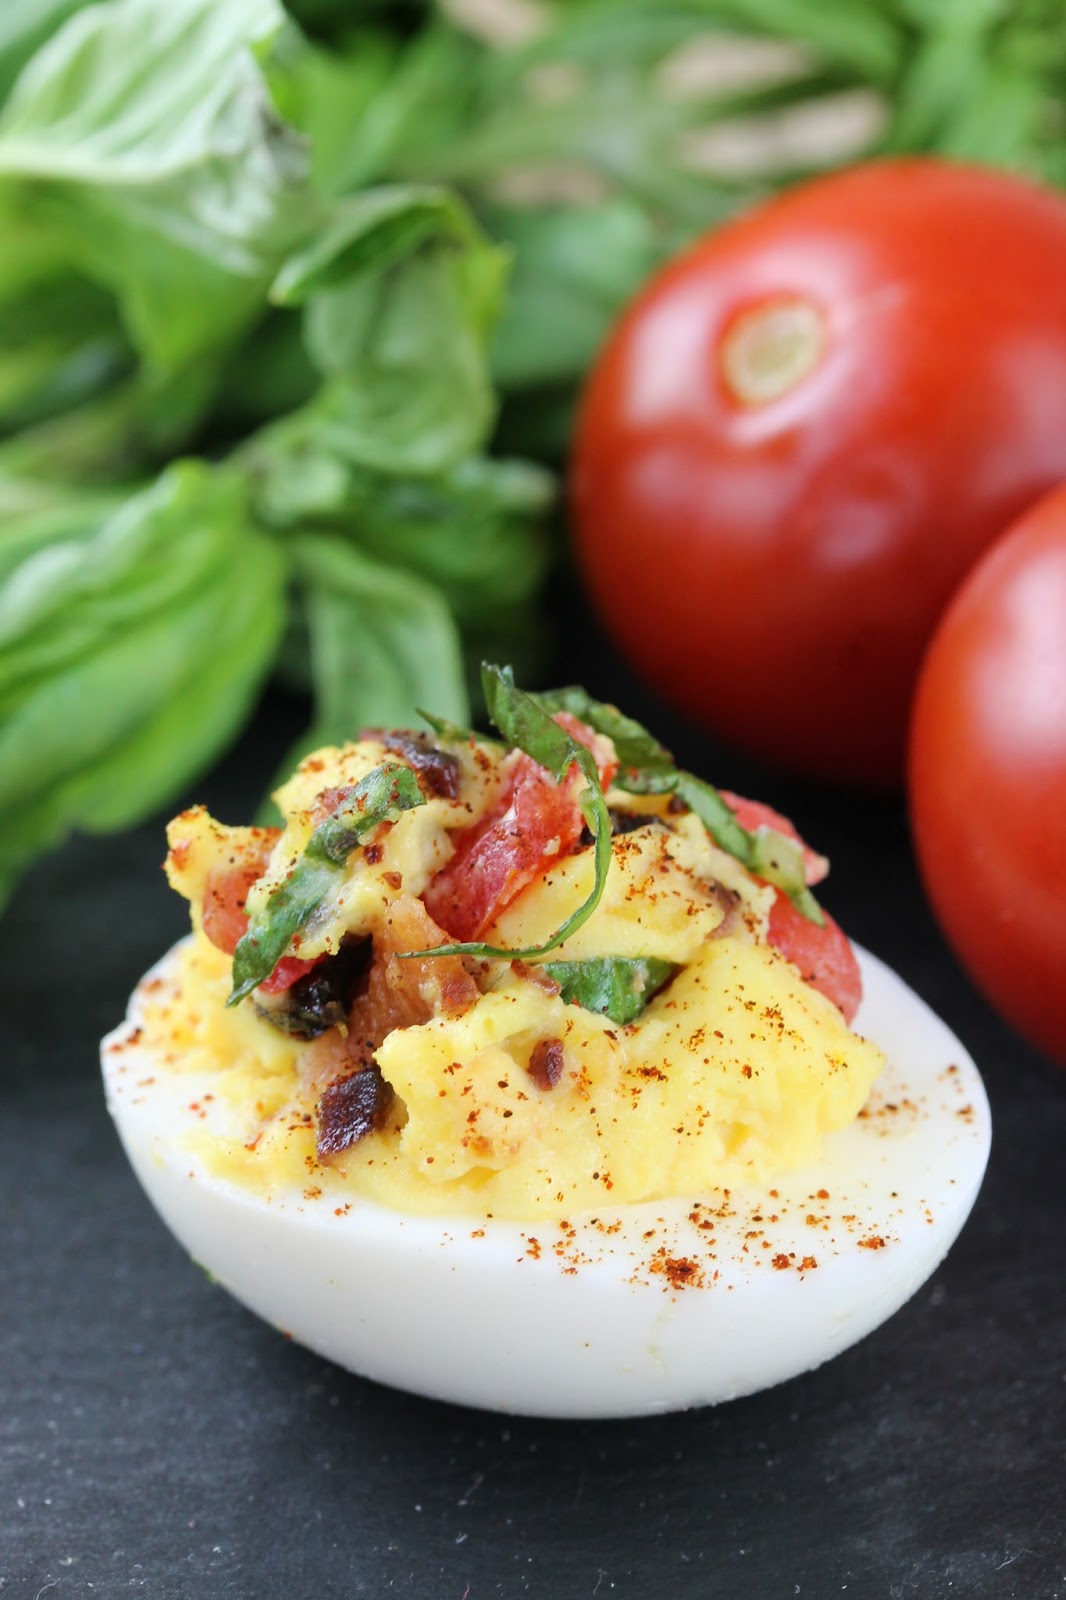 Bacon, Basil (in place of lettuce), and Tomato form this BLT Deviled Egg. This appetizer may be simple, but it packs a punch. The secret is the candied bacon.